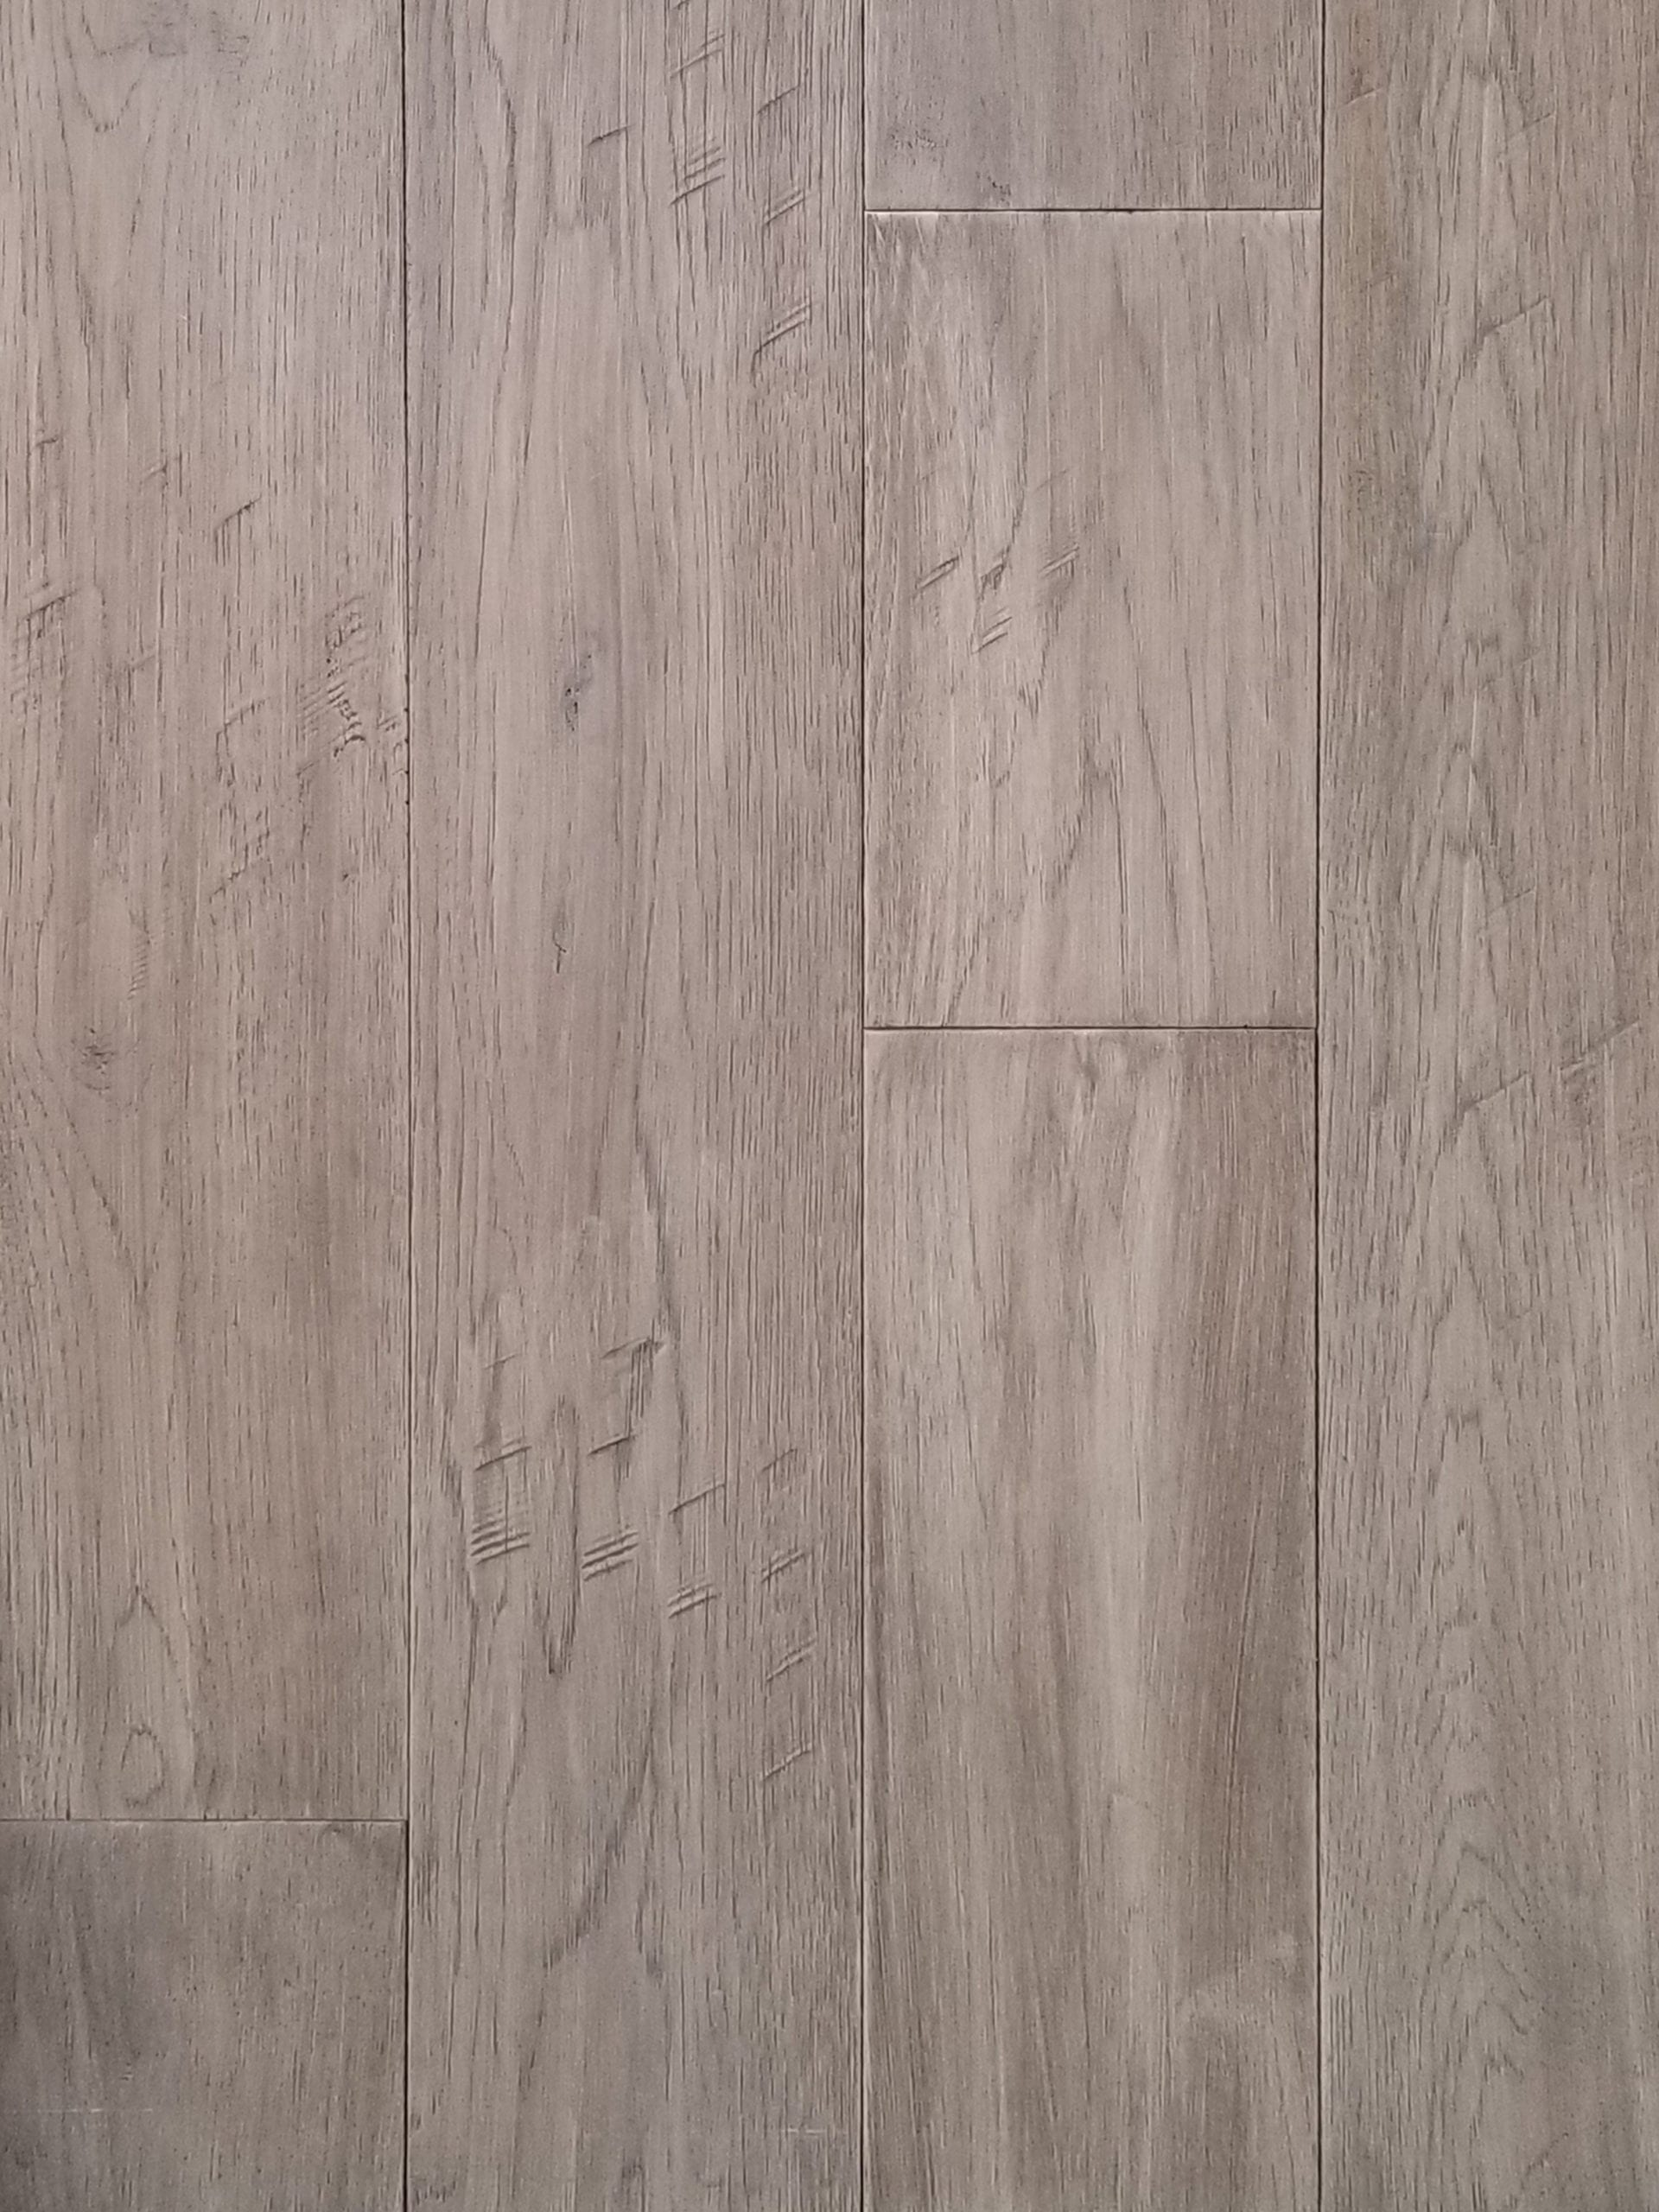 6.5x.75in Engineered Hickory Euro Grey-4.55